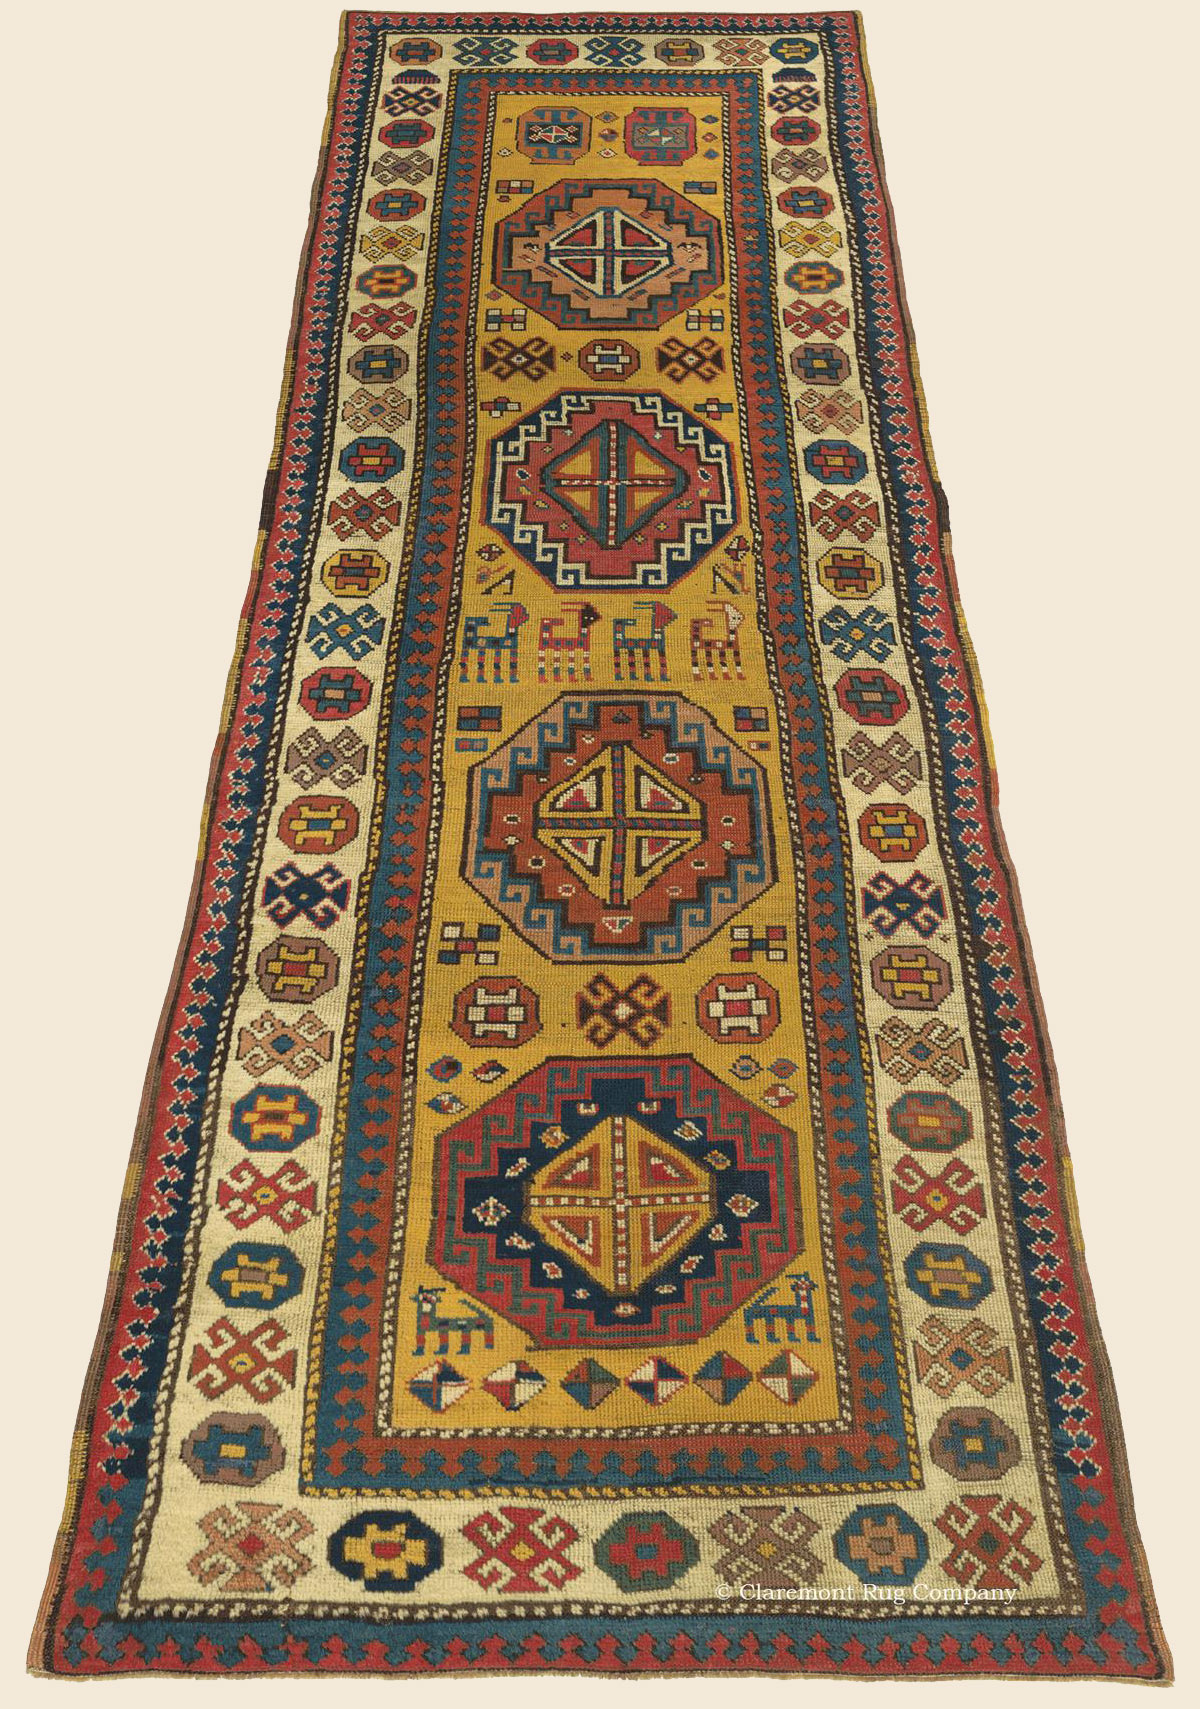 Kazak Runner Southern Central Caucasian Antique Rug